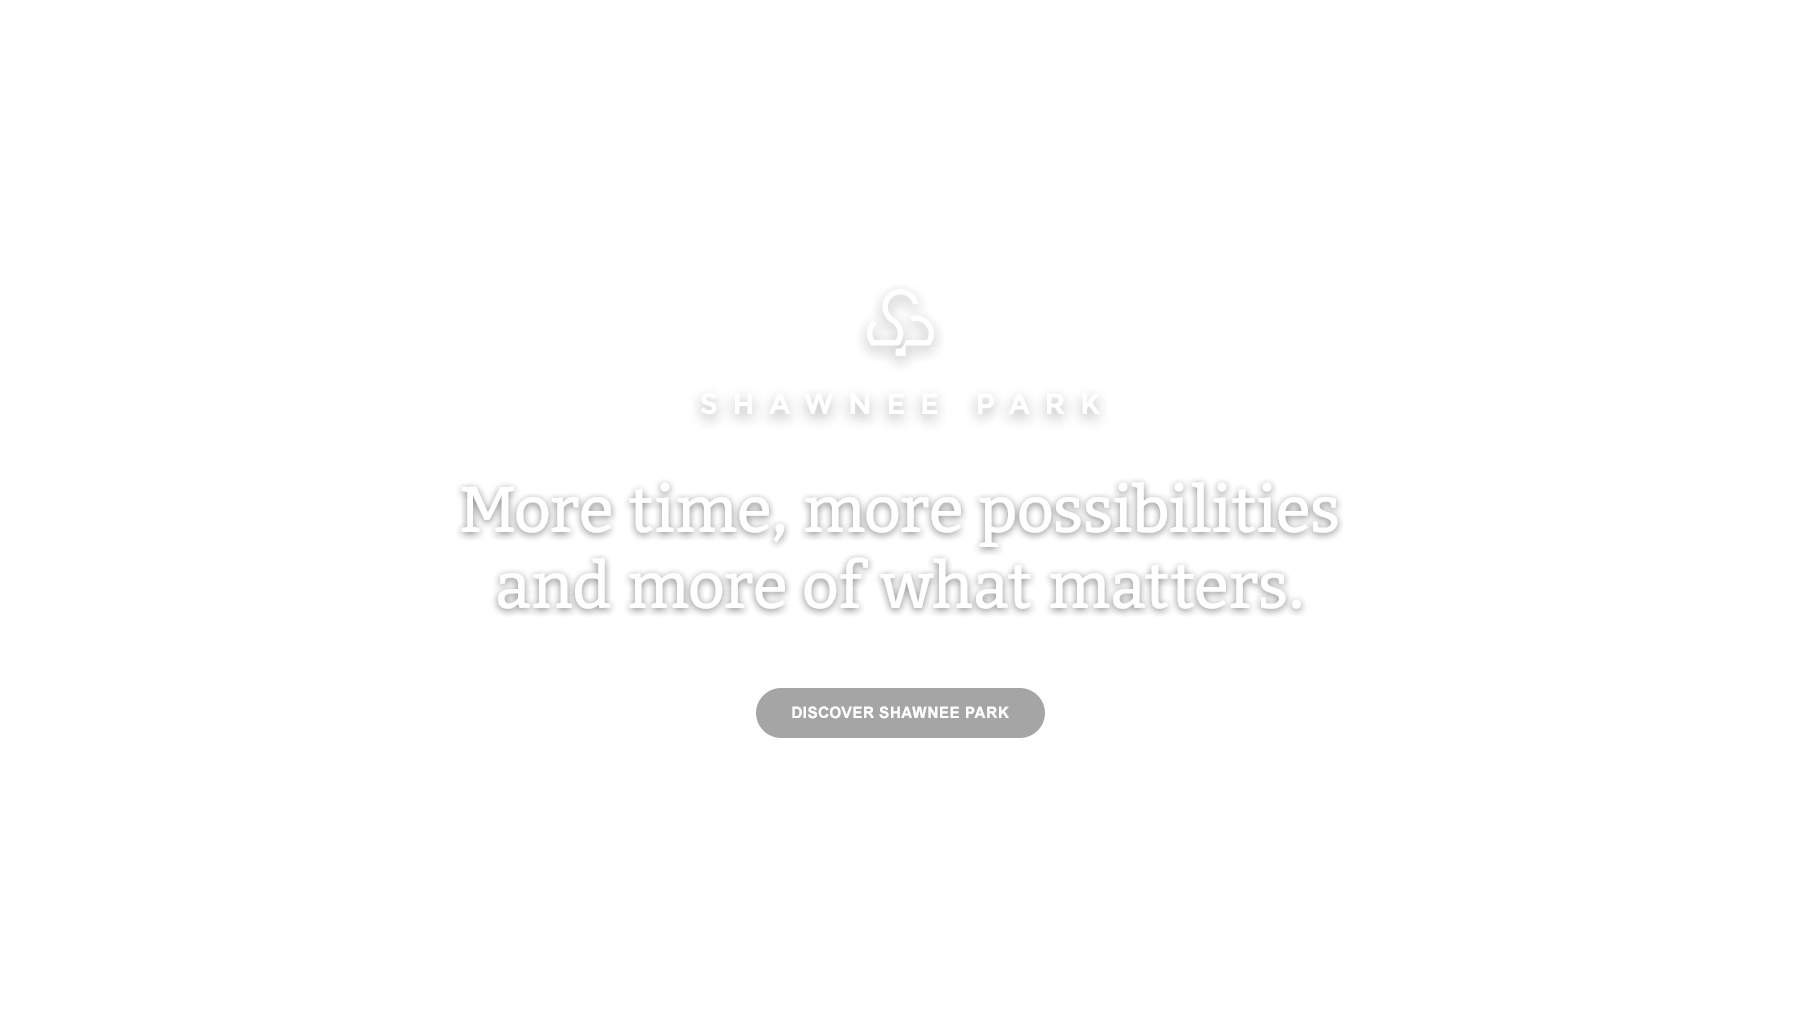 More time, more possibilities and more of what matters. Shawnee Park slogan